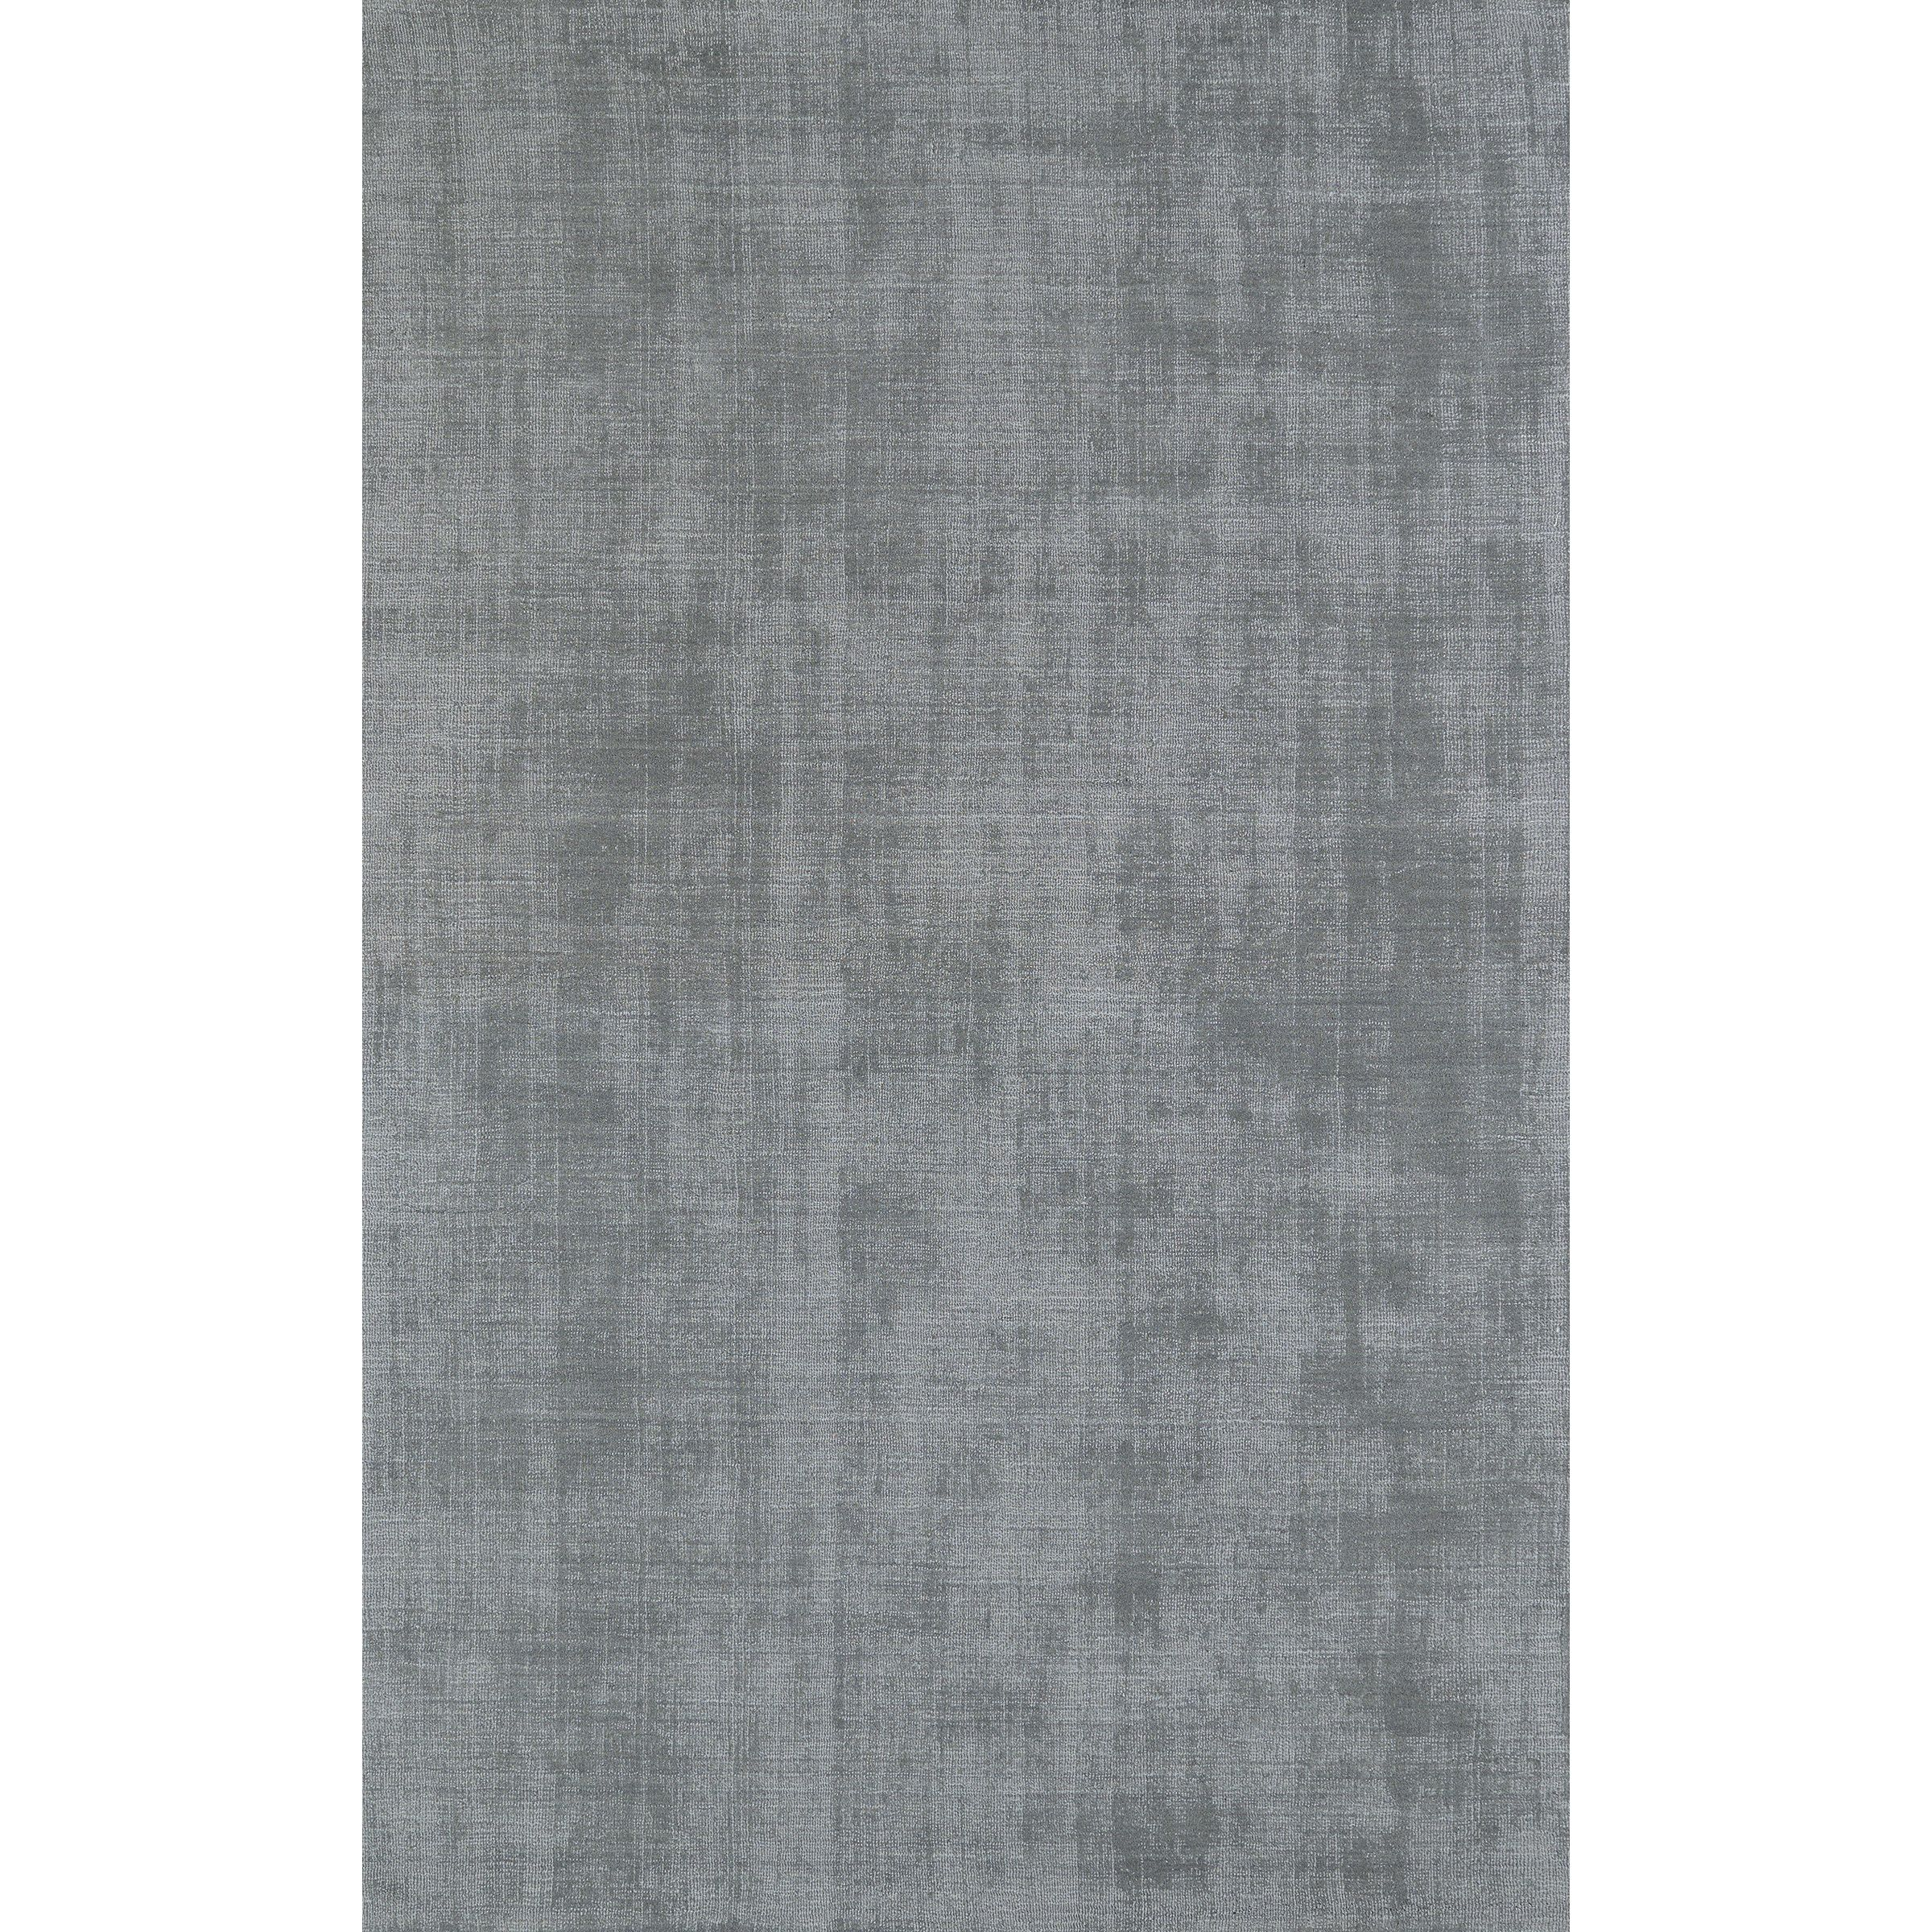 Dalyn Rug Co Laramie Silver Area Reviews Wayfair